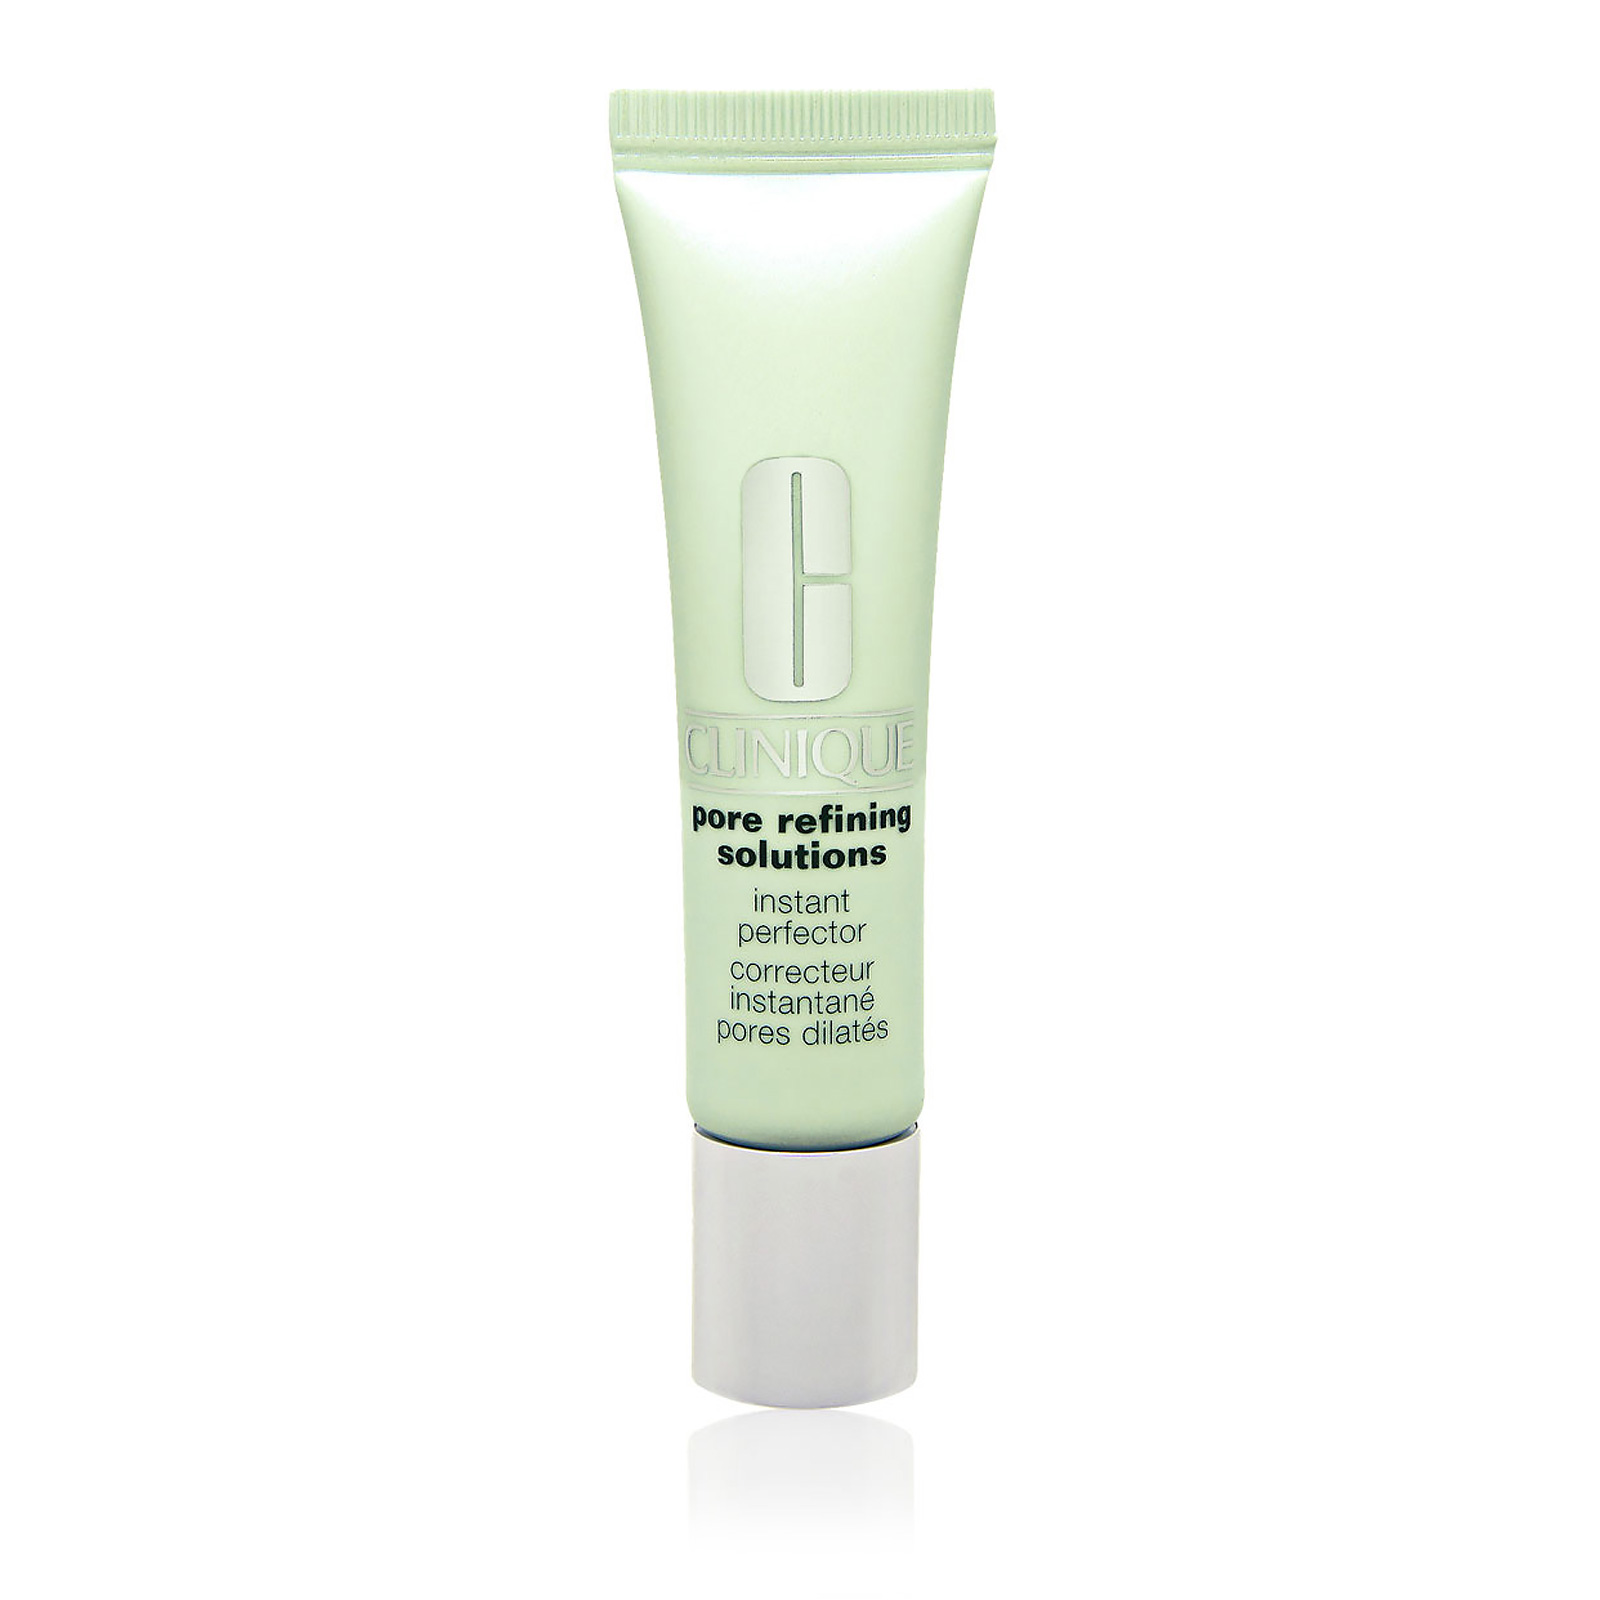 Pore Refining Solutions Instant Perfector